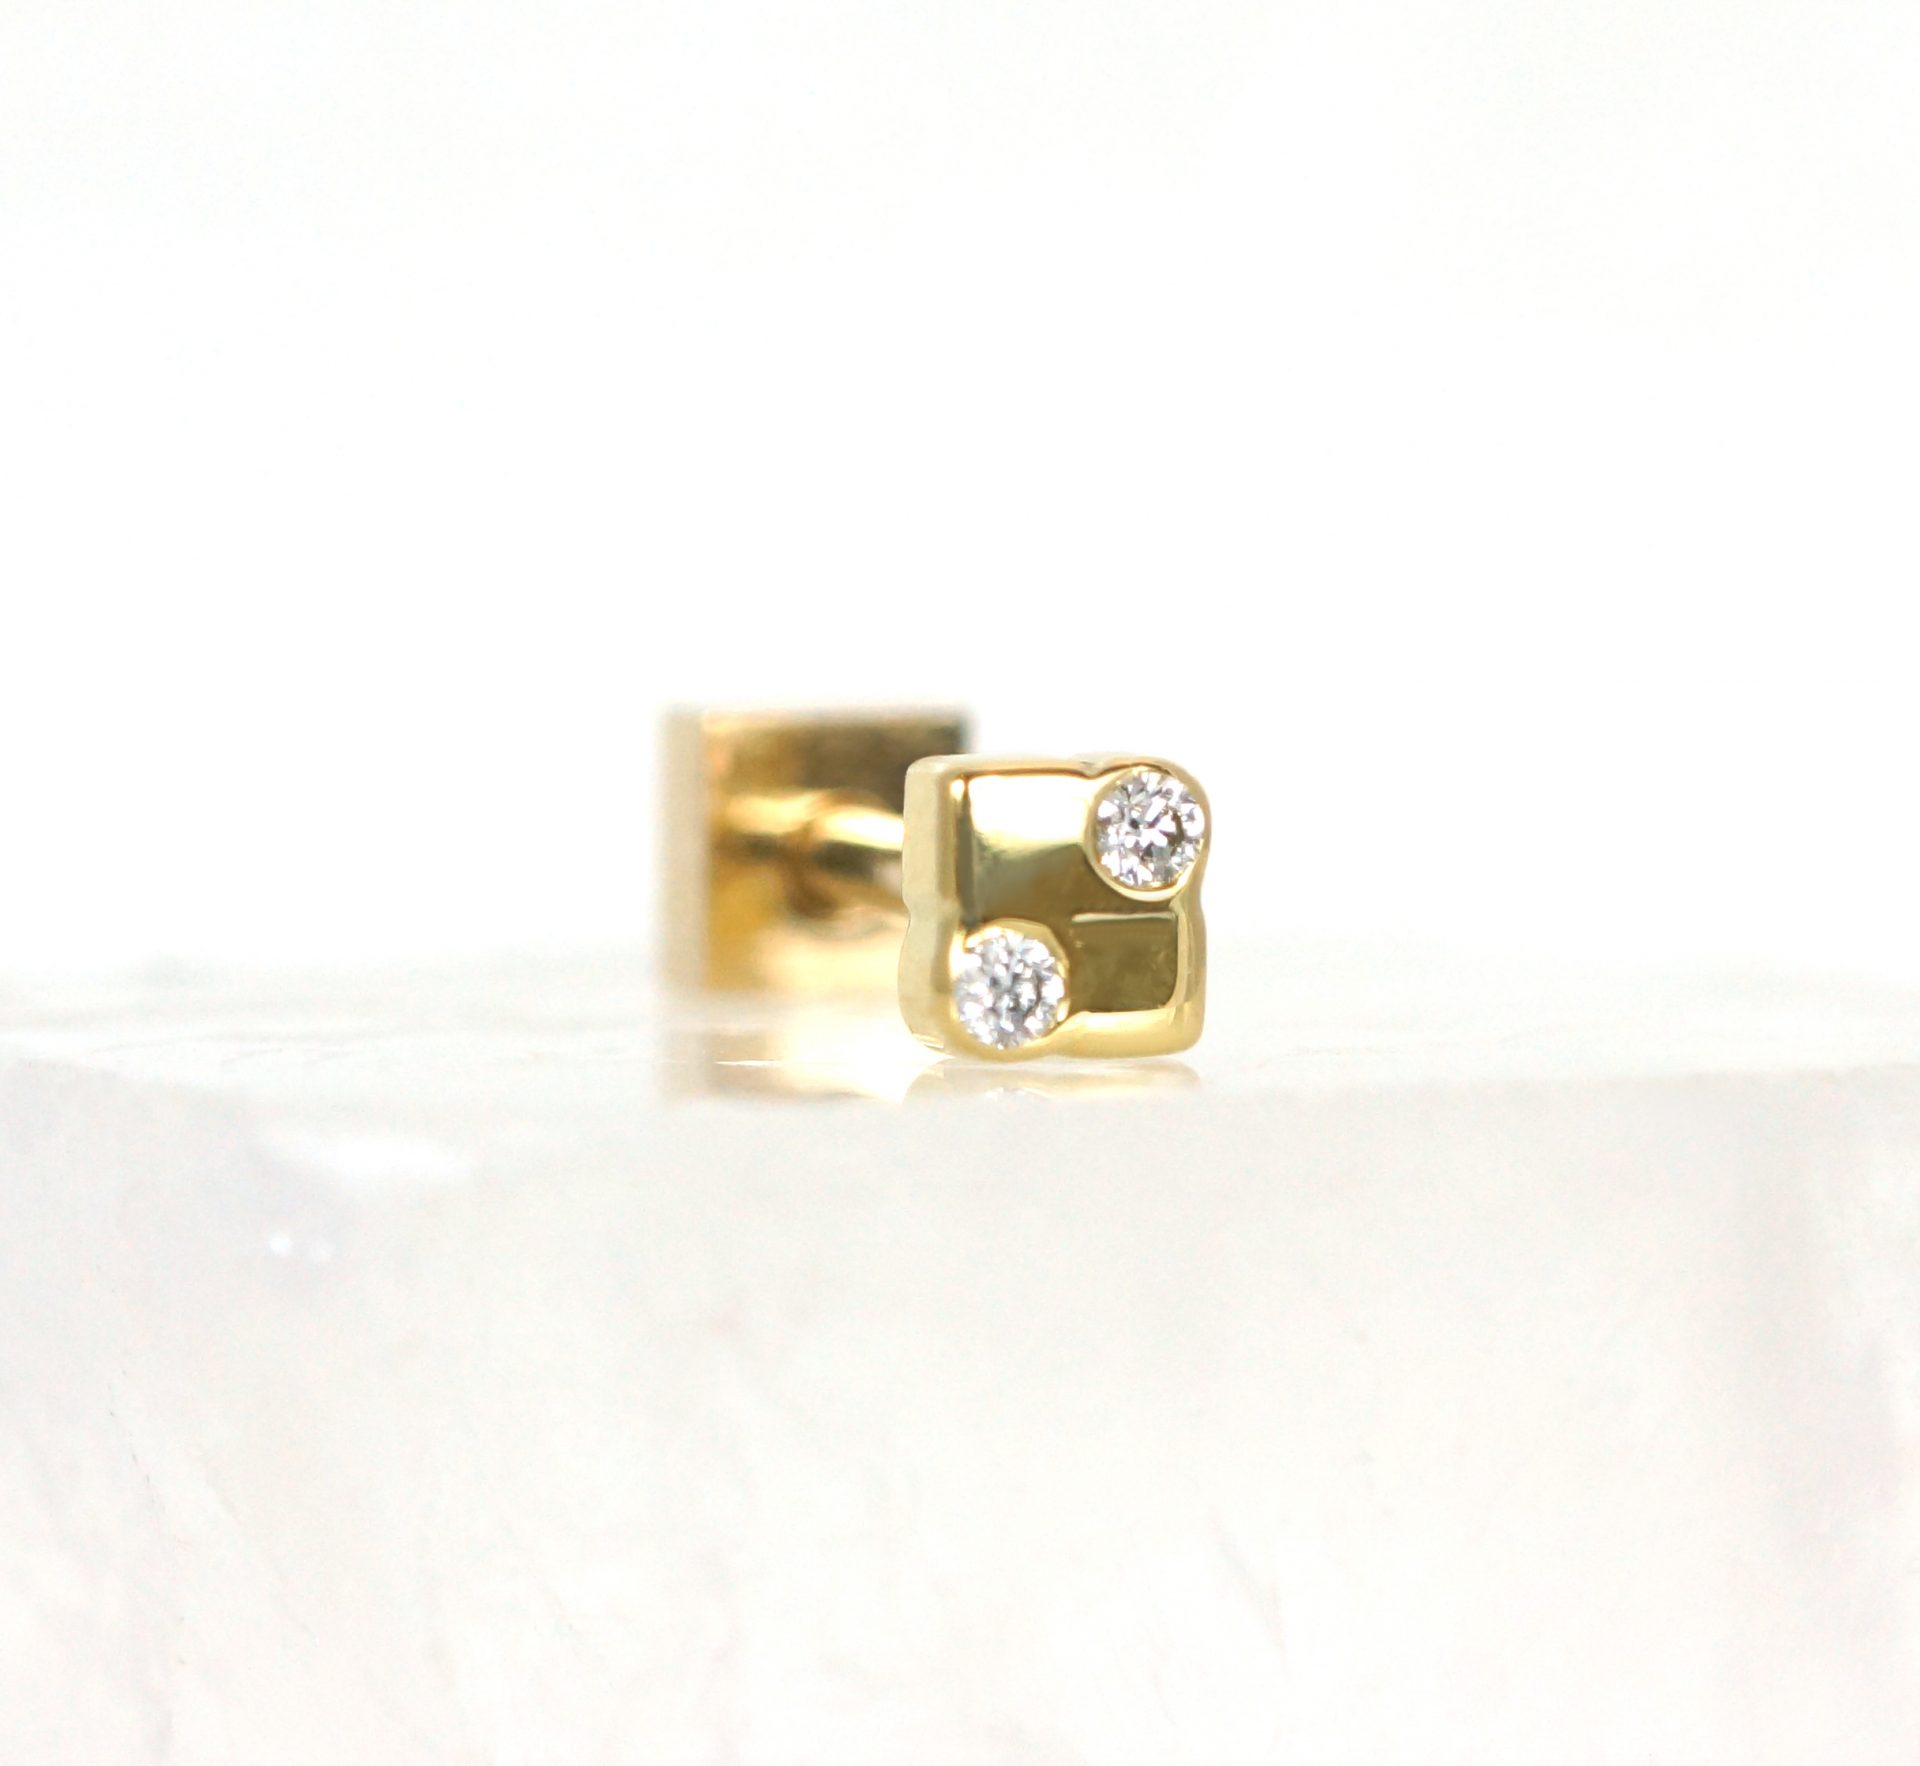 luxury quality cartilage earrings high quality piercing jewelry brands lena cohen designer cartilage earrings 18k gold